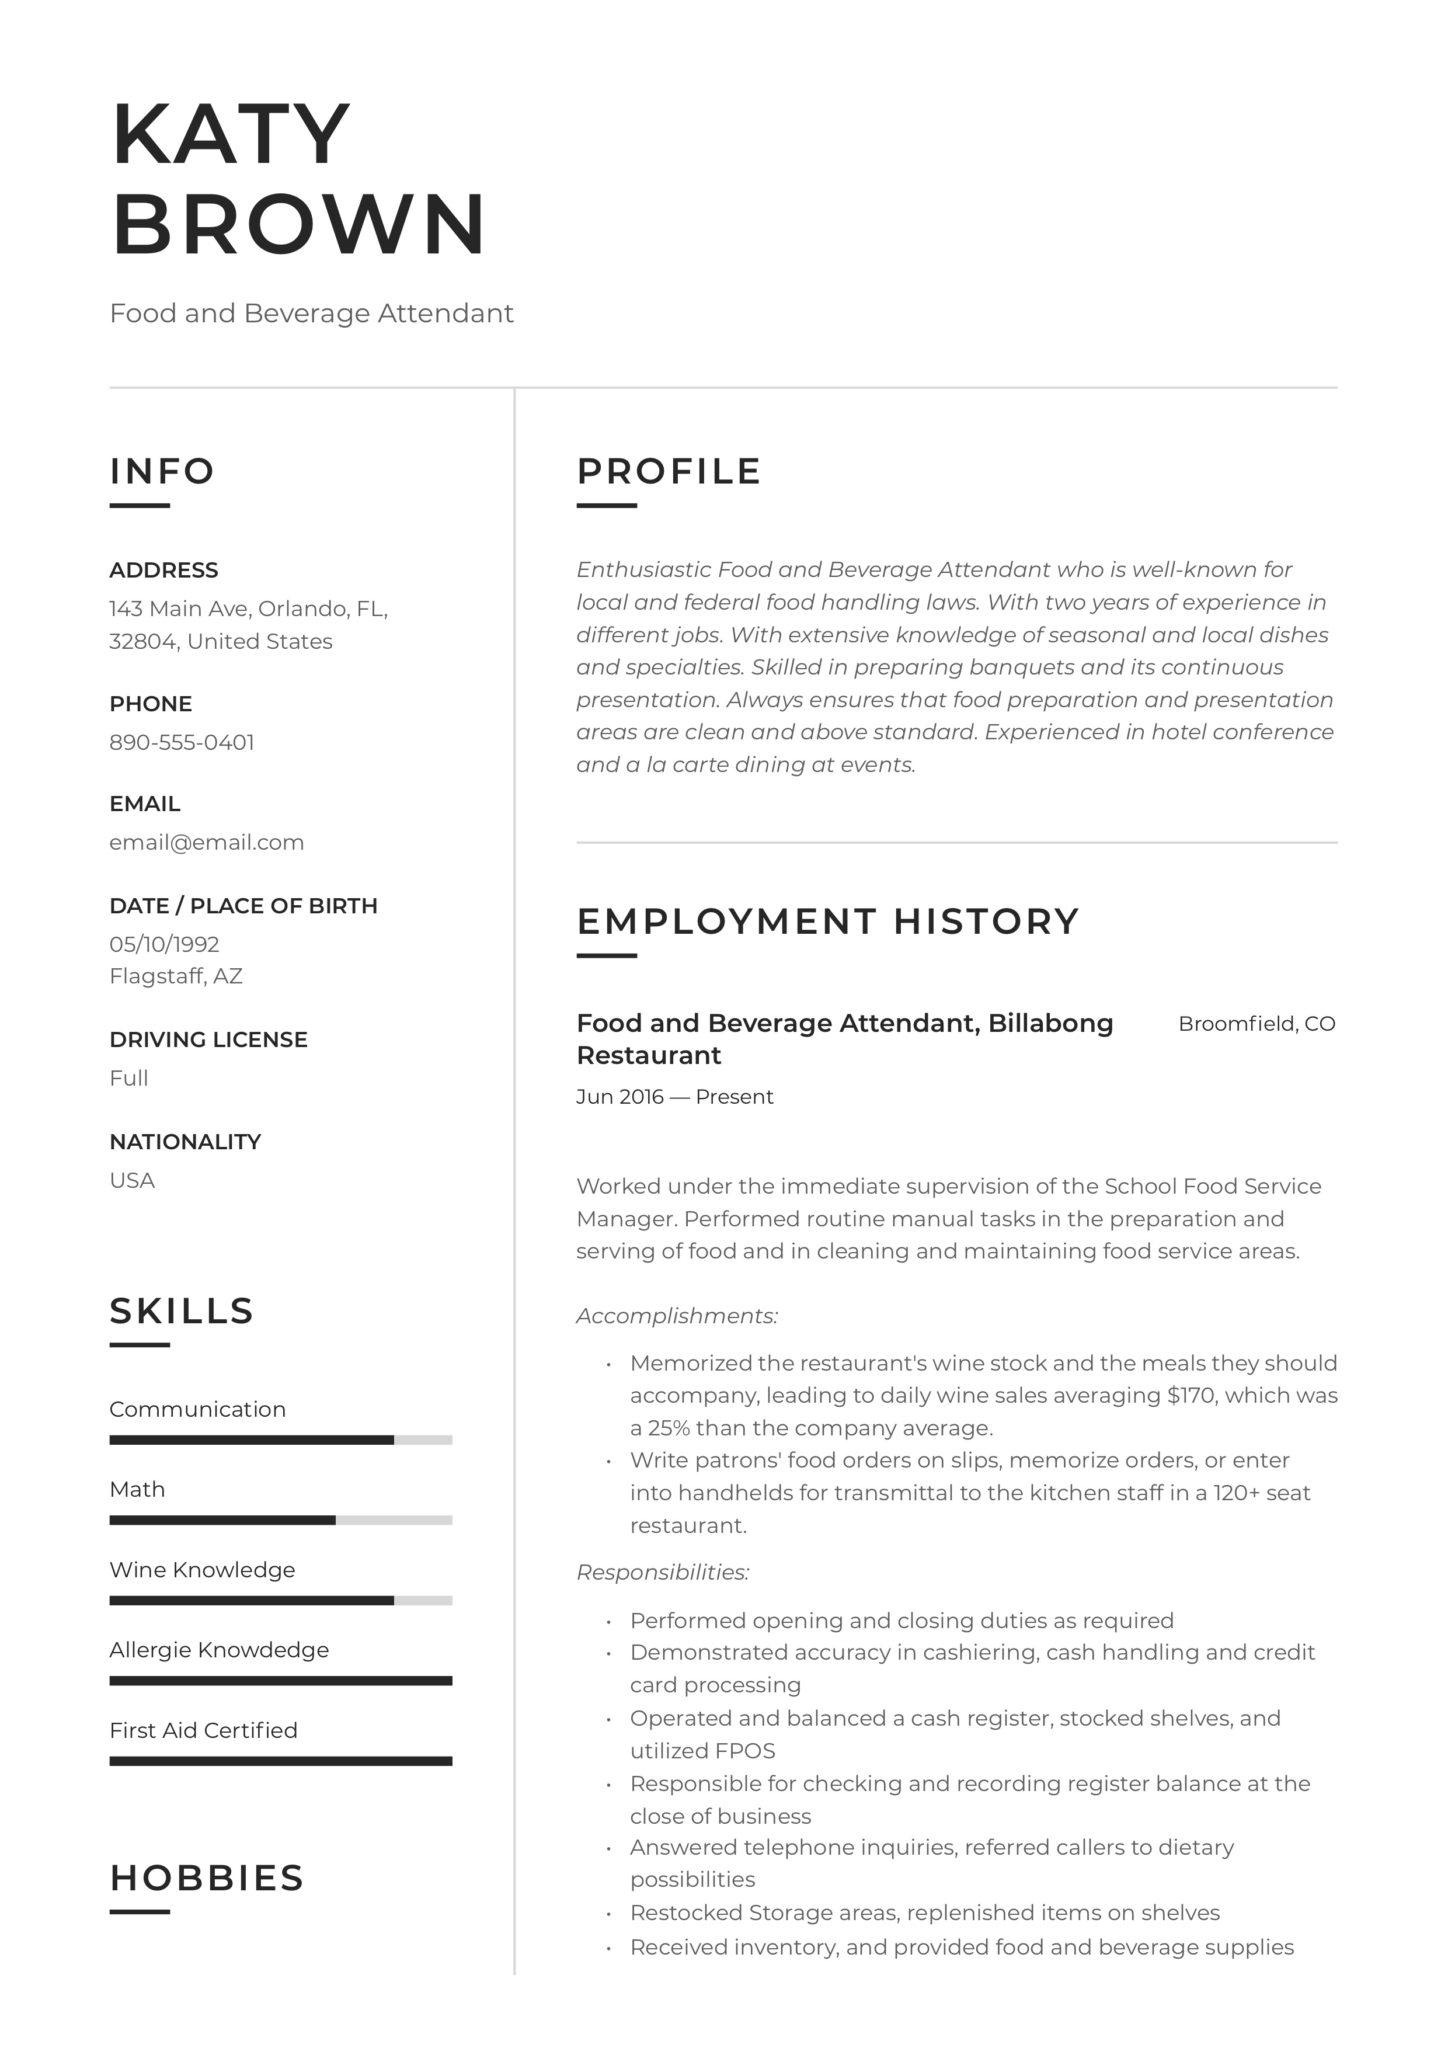 food and beverage attendant resume examples word pdf customer service hospitality scaled Resume Customer Service Hospitality Resume